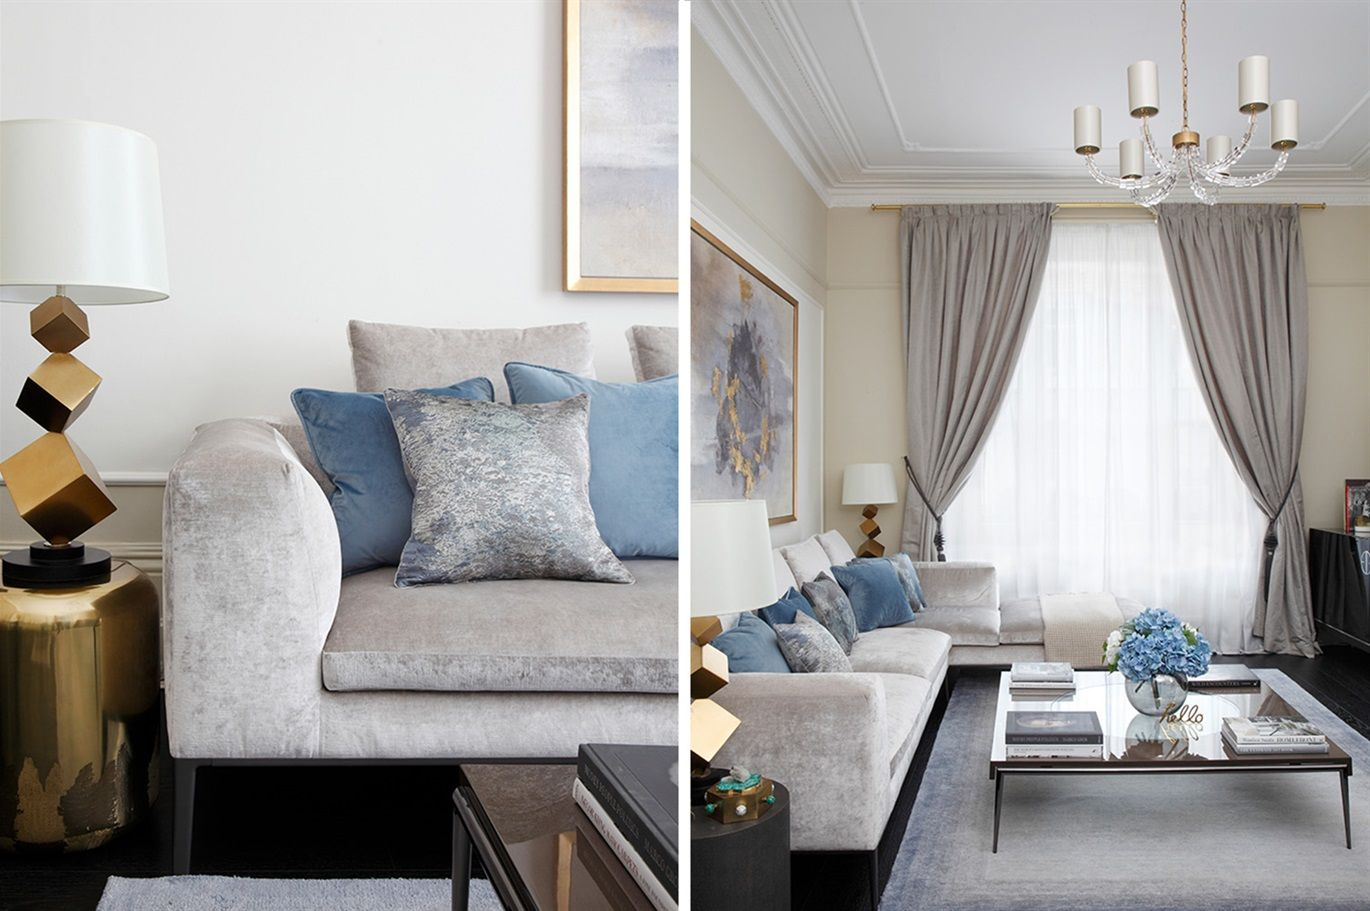 How to create a glamorous and sophisticated